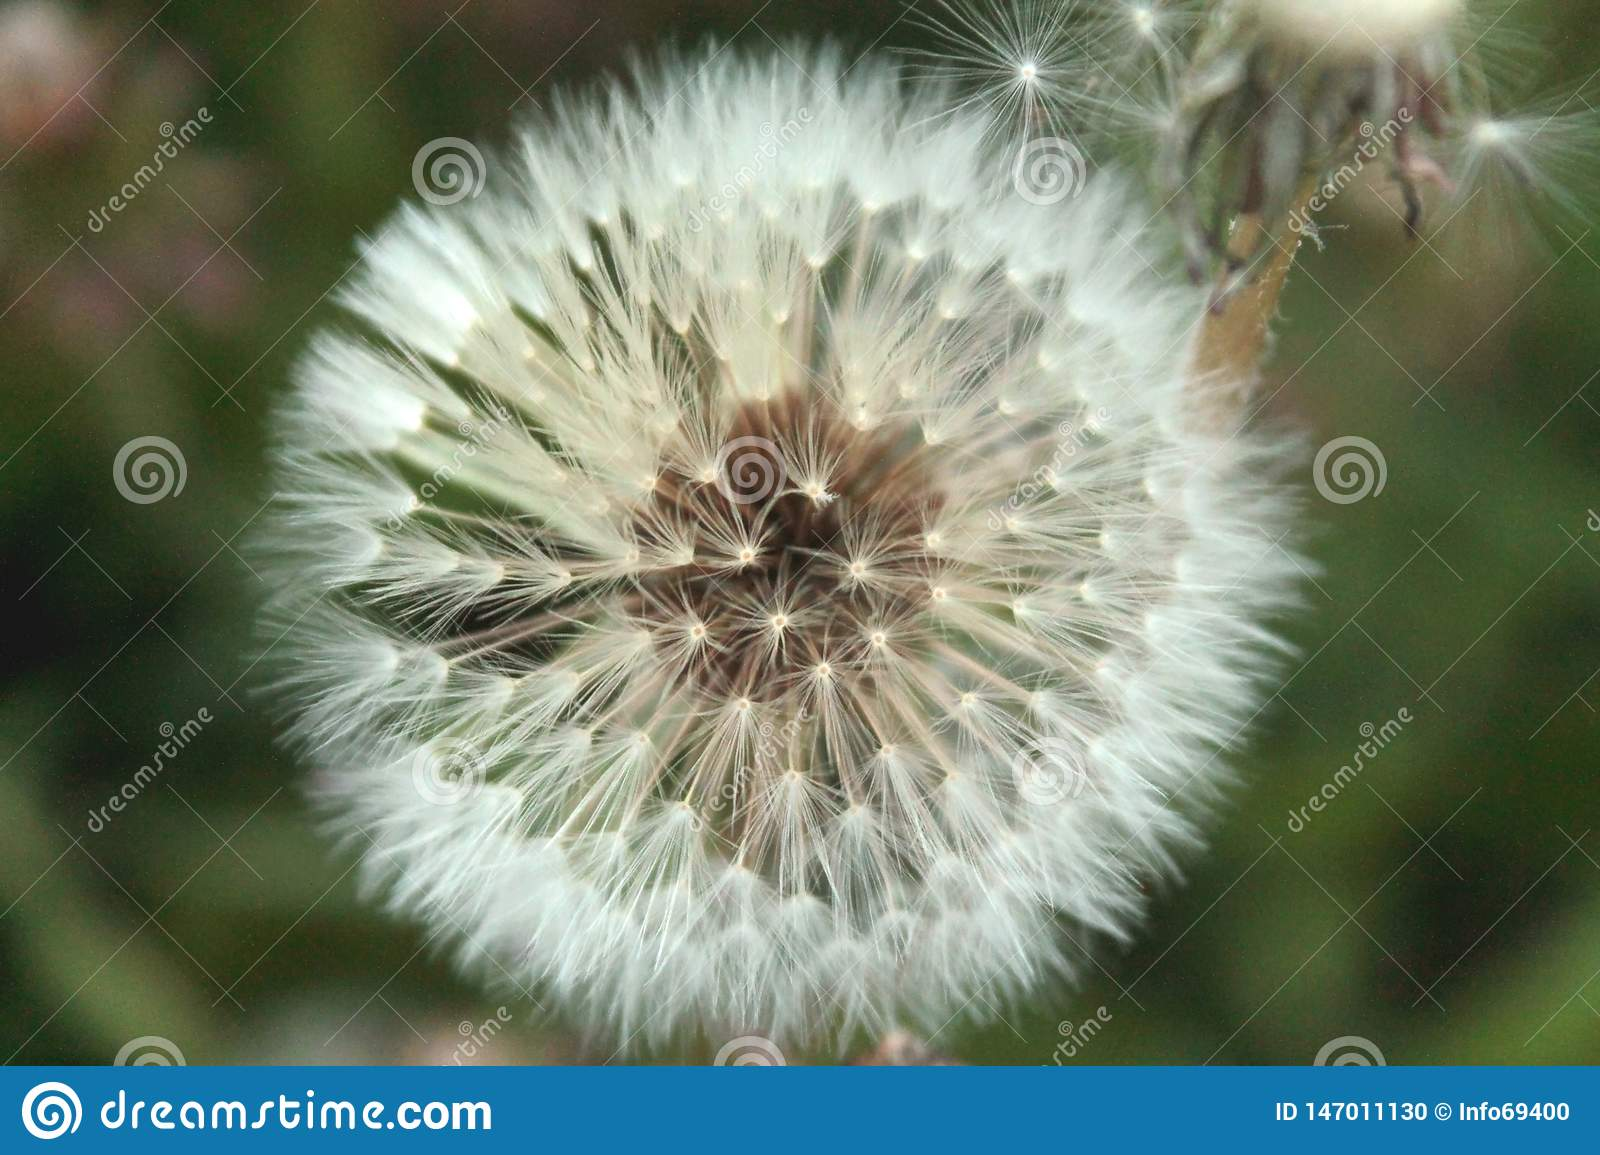 Close up view of Dandelion white flower